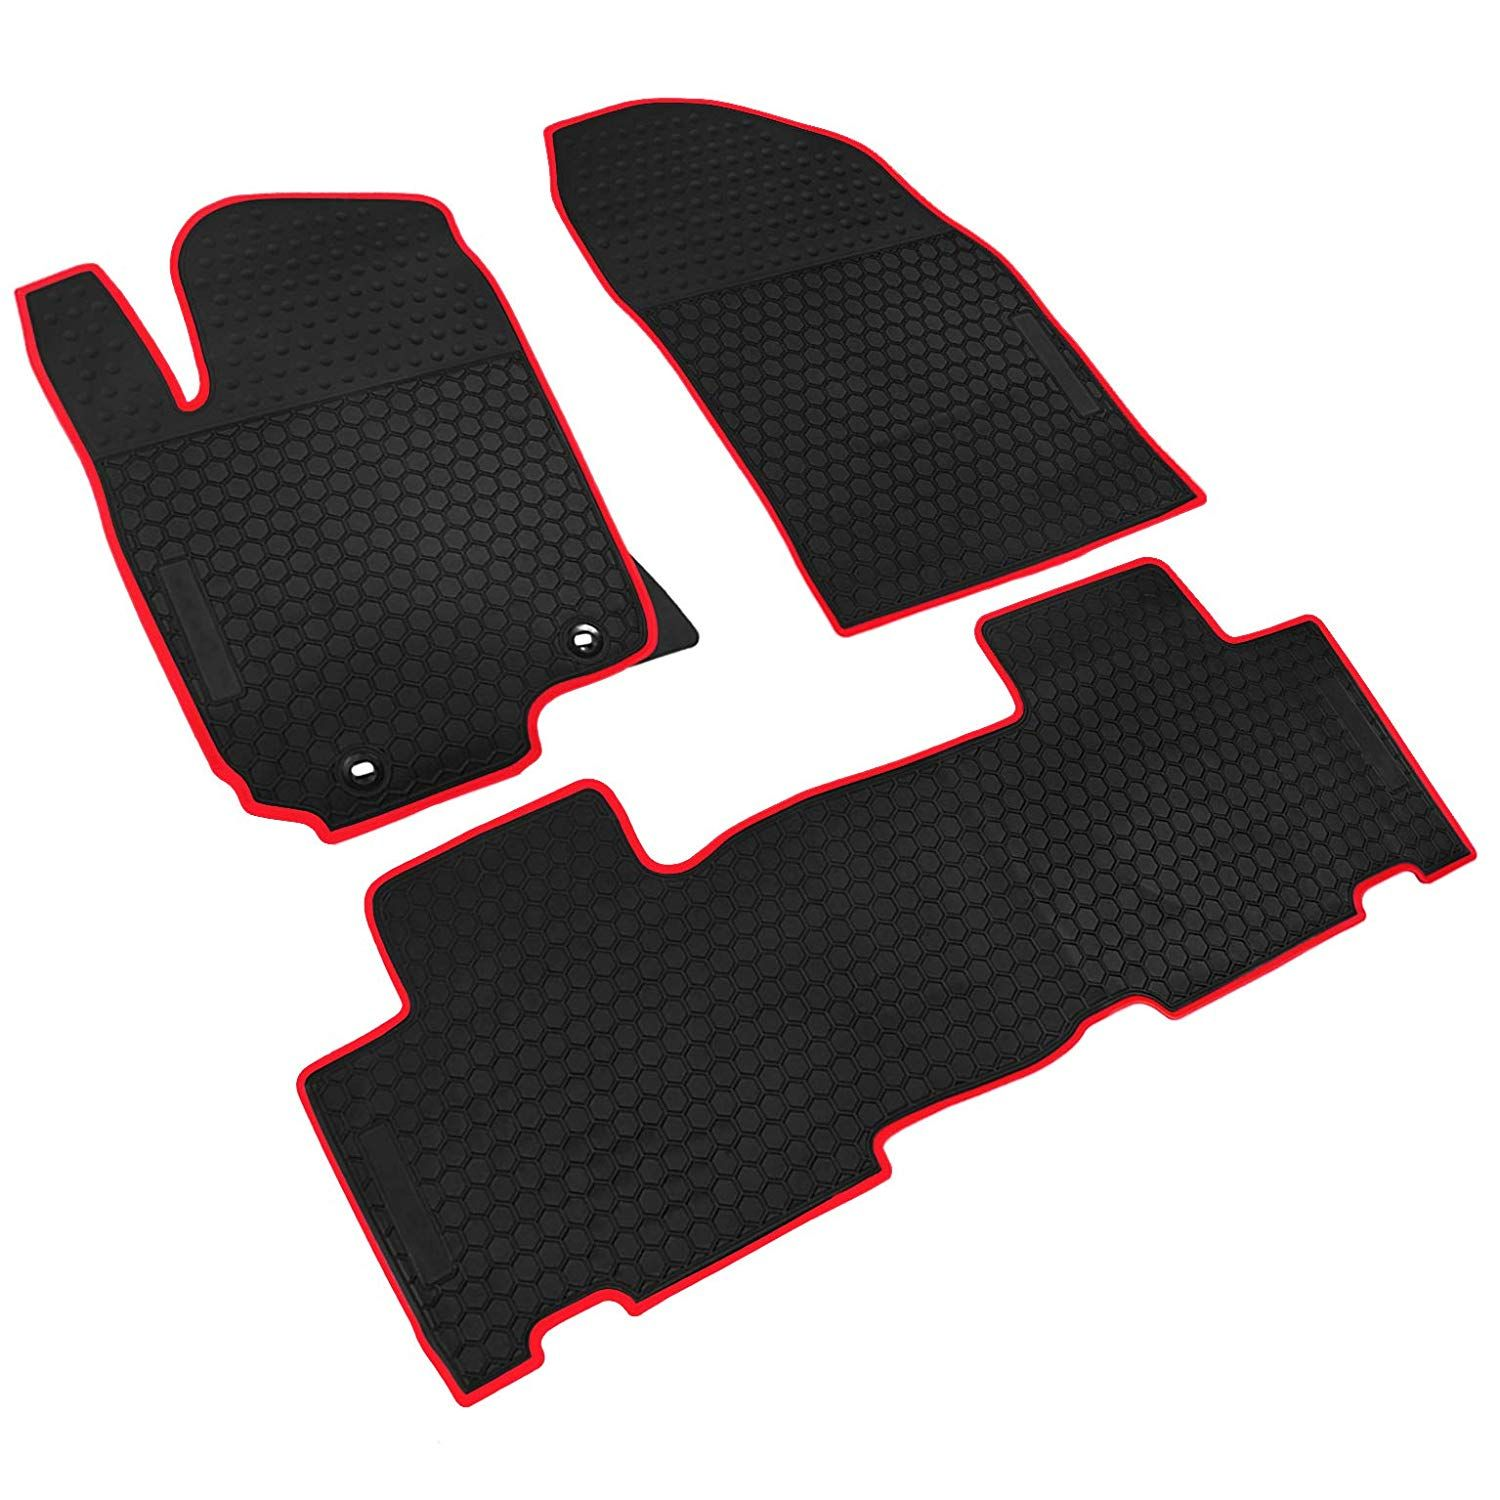 Tan Black Intro-Tech Hexomat Front Row Custom Fit Floor Mat for Select Dodge Ram Promaster Models Rubber-Like Compound